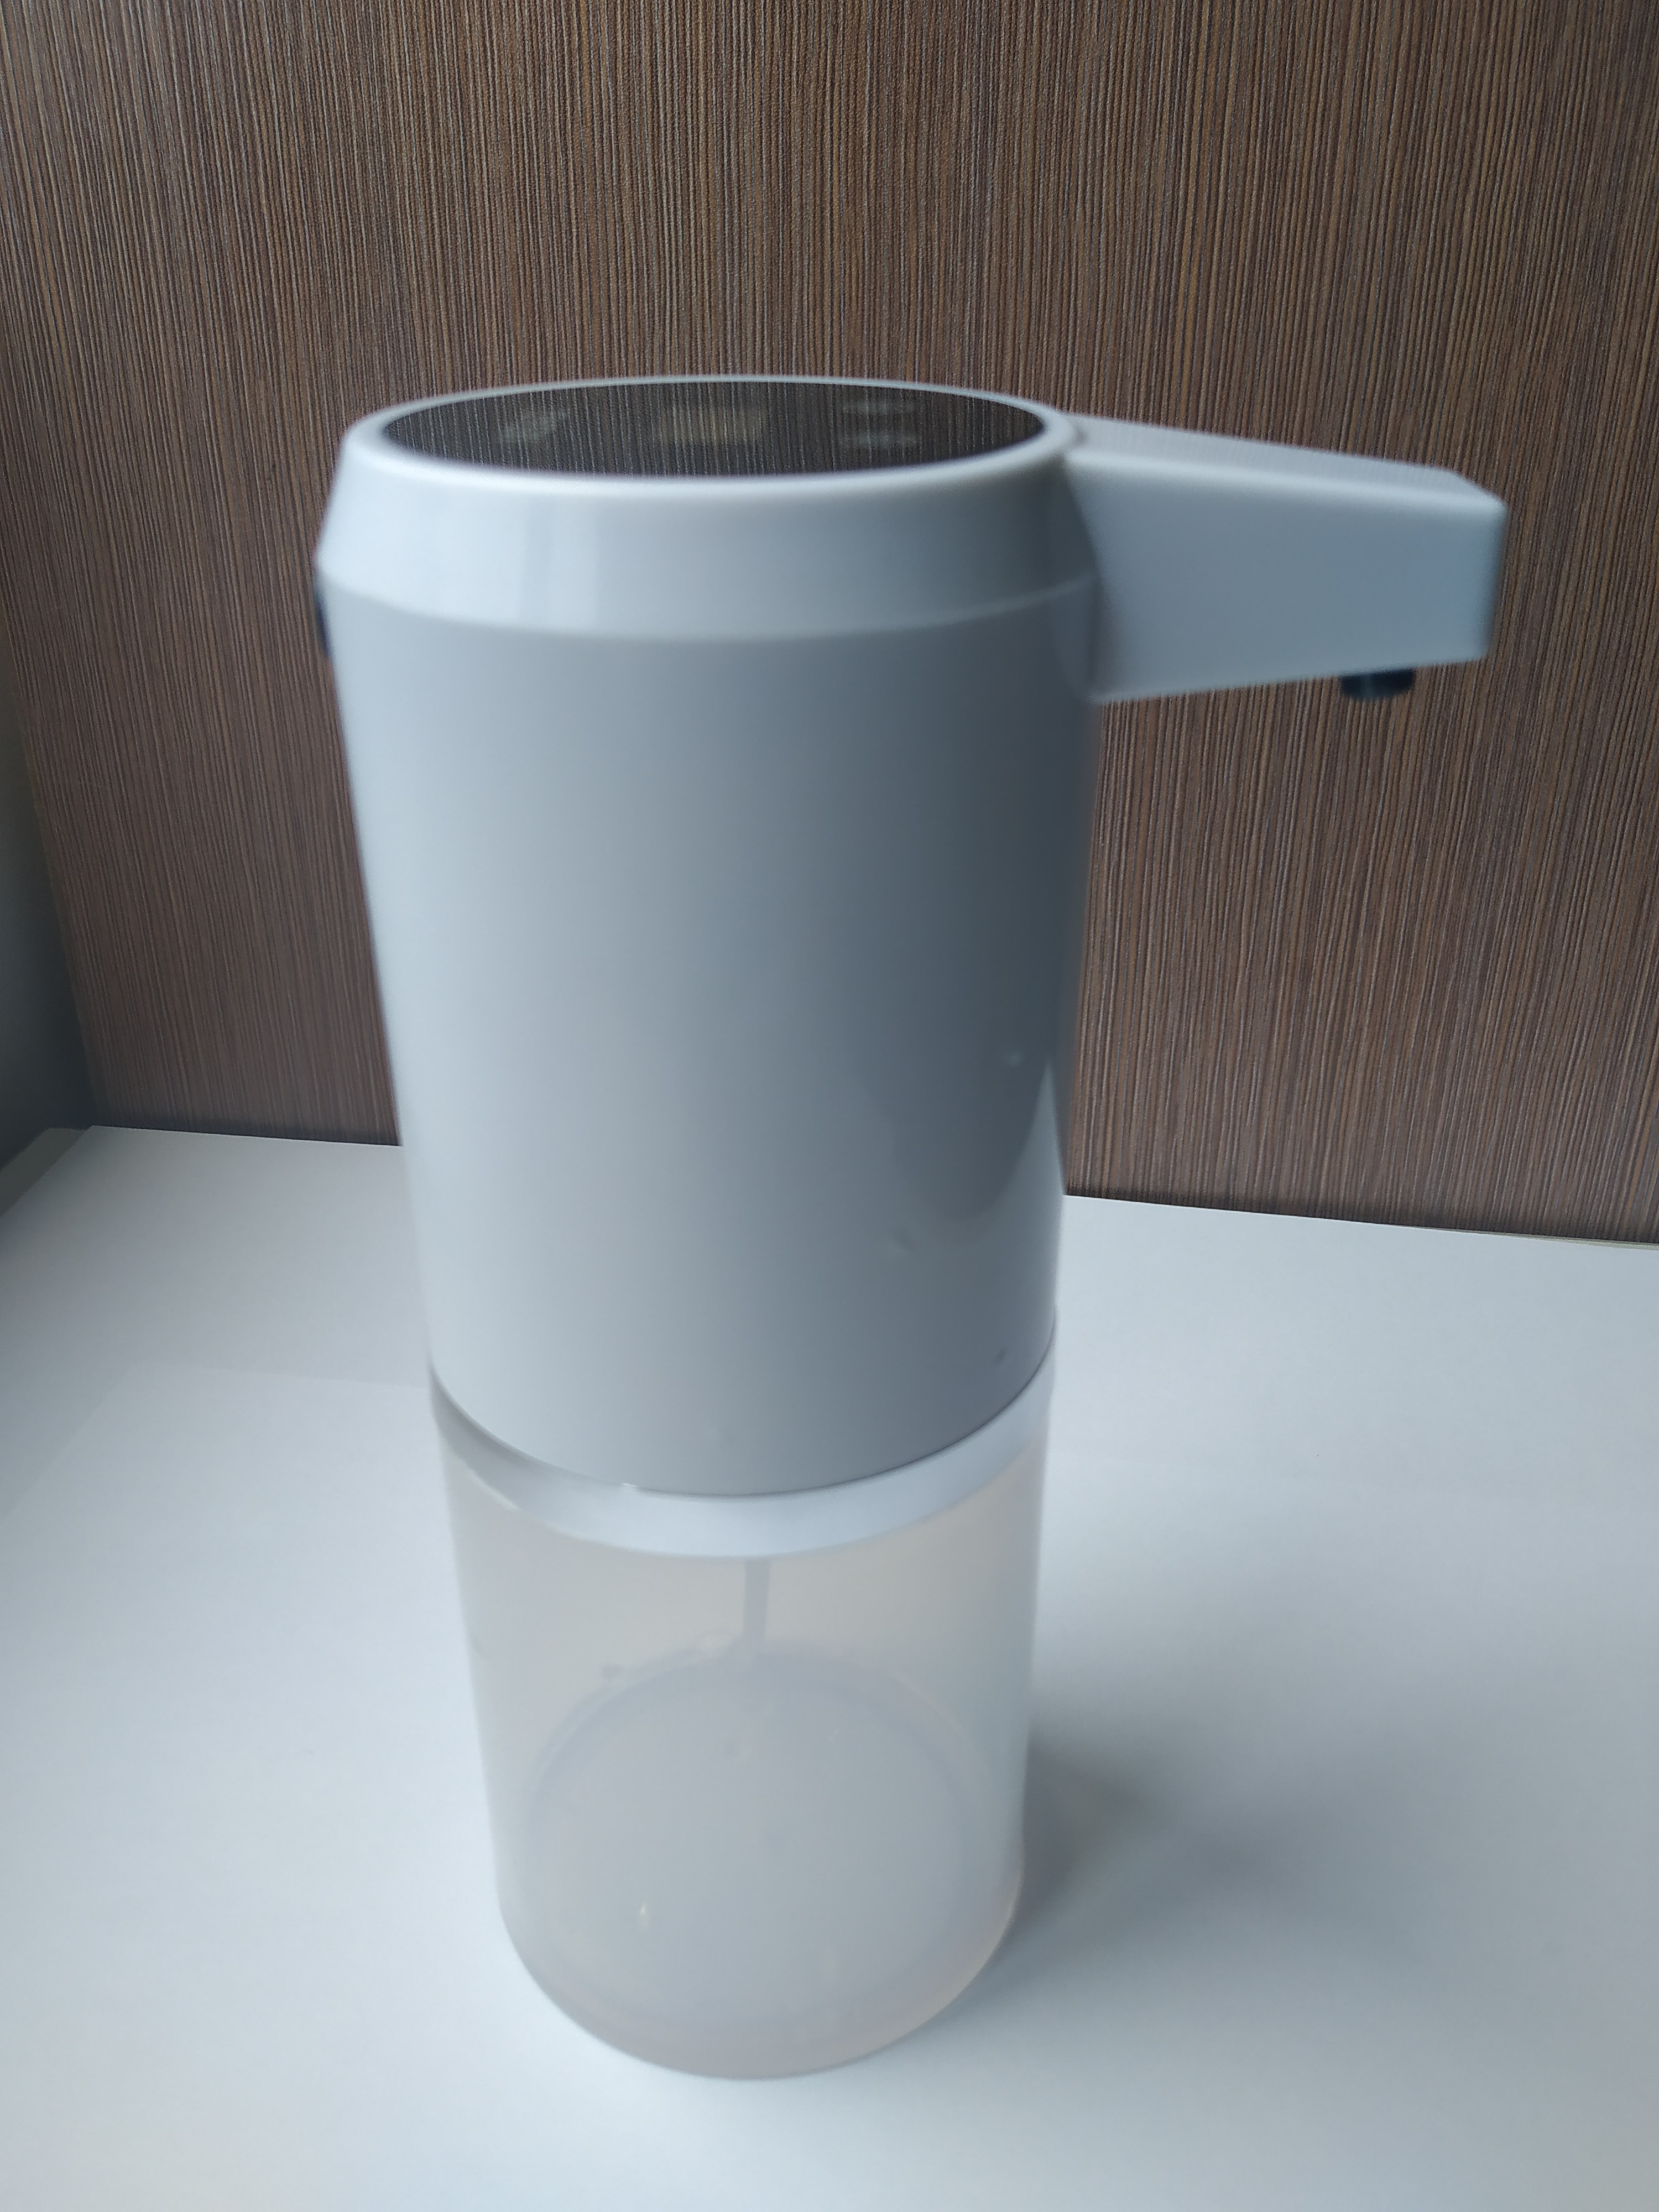 Hands Free Stainless Steel Automatic Touchless Sensor IR Soap Liquid Dispenser